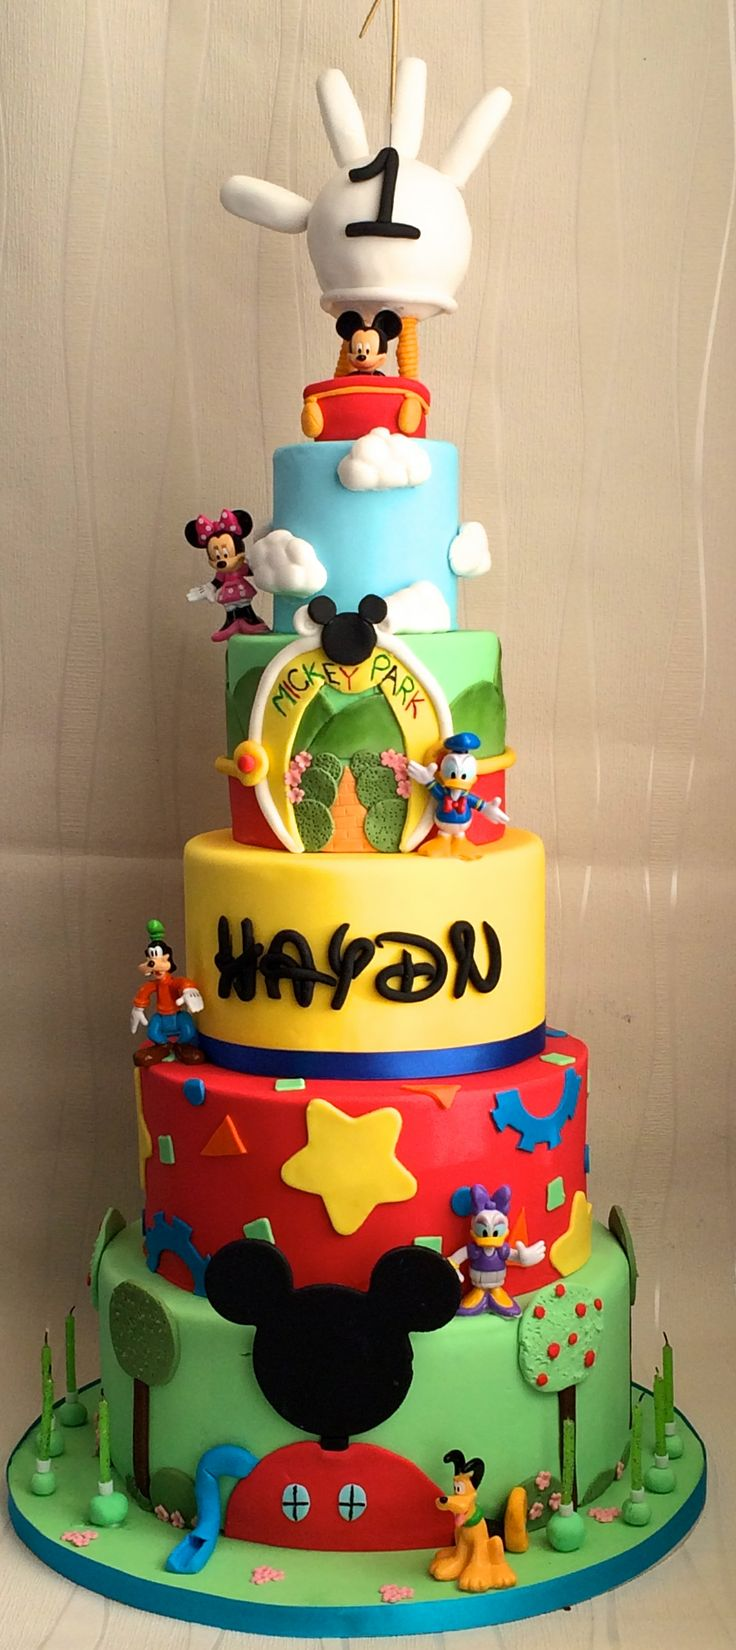 1st Birthday Mickey Mouse Clubhouse Cake